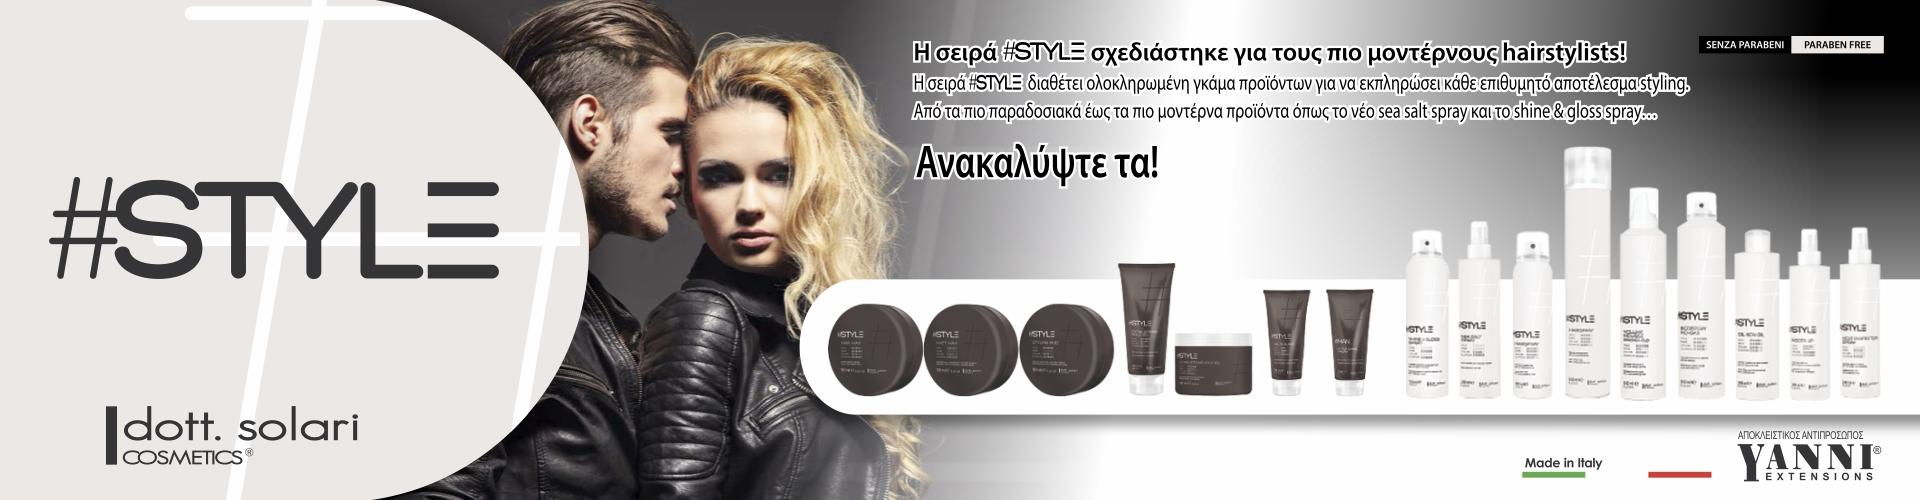 banner_style